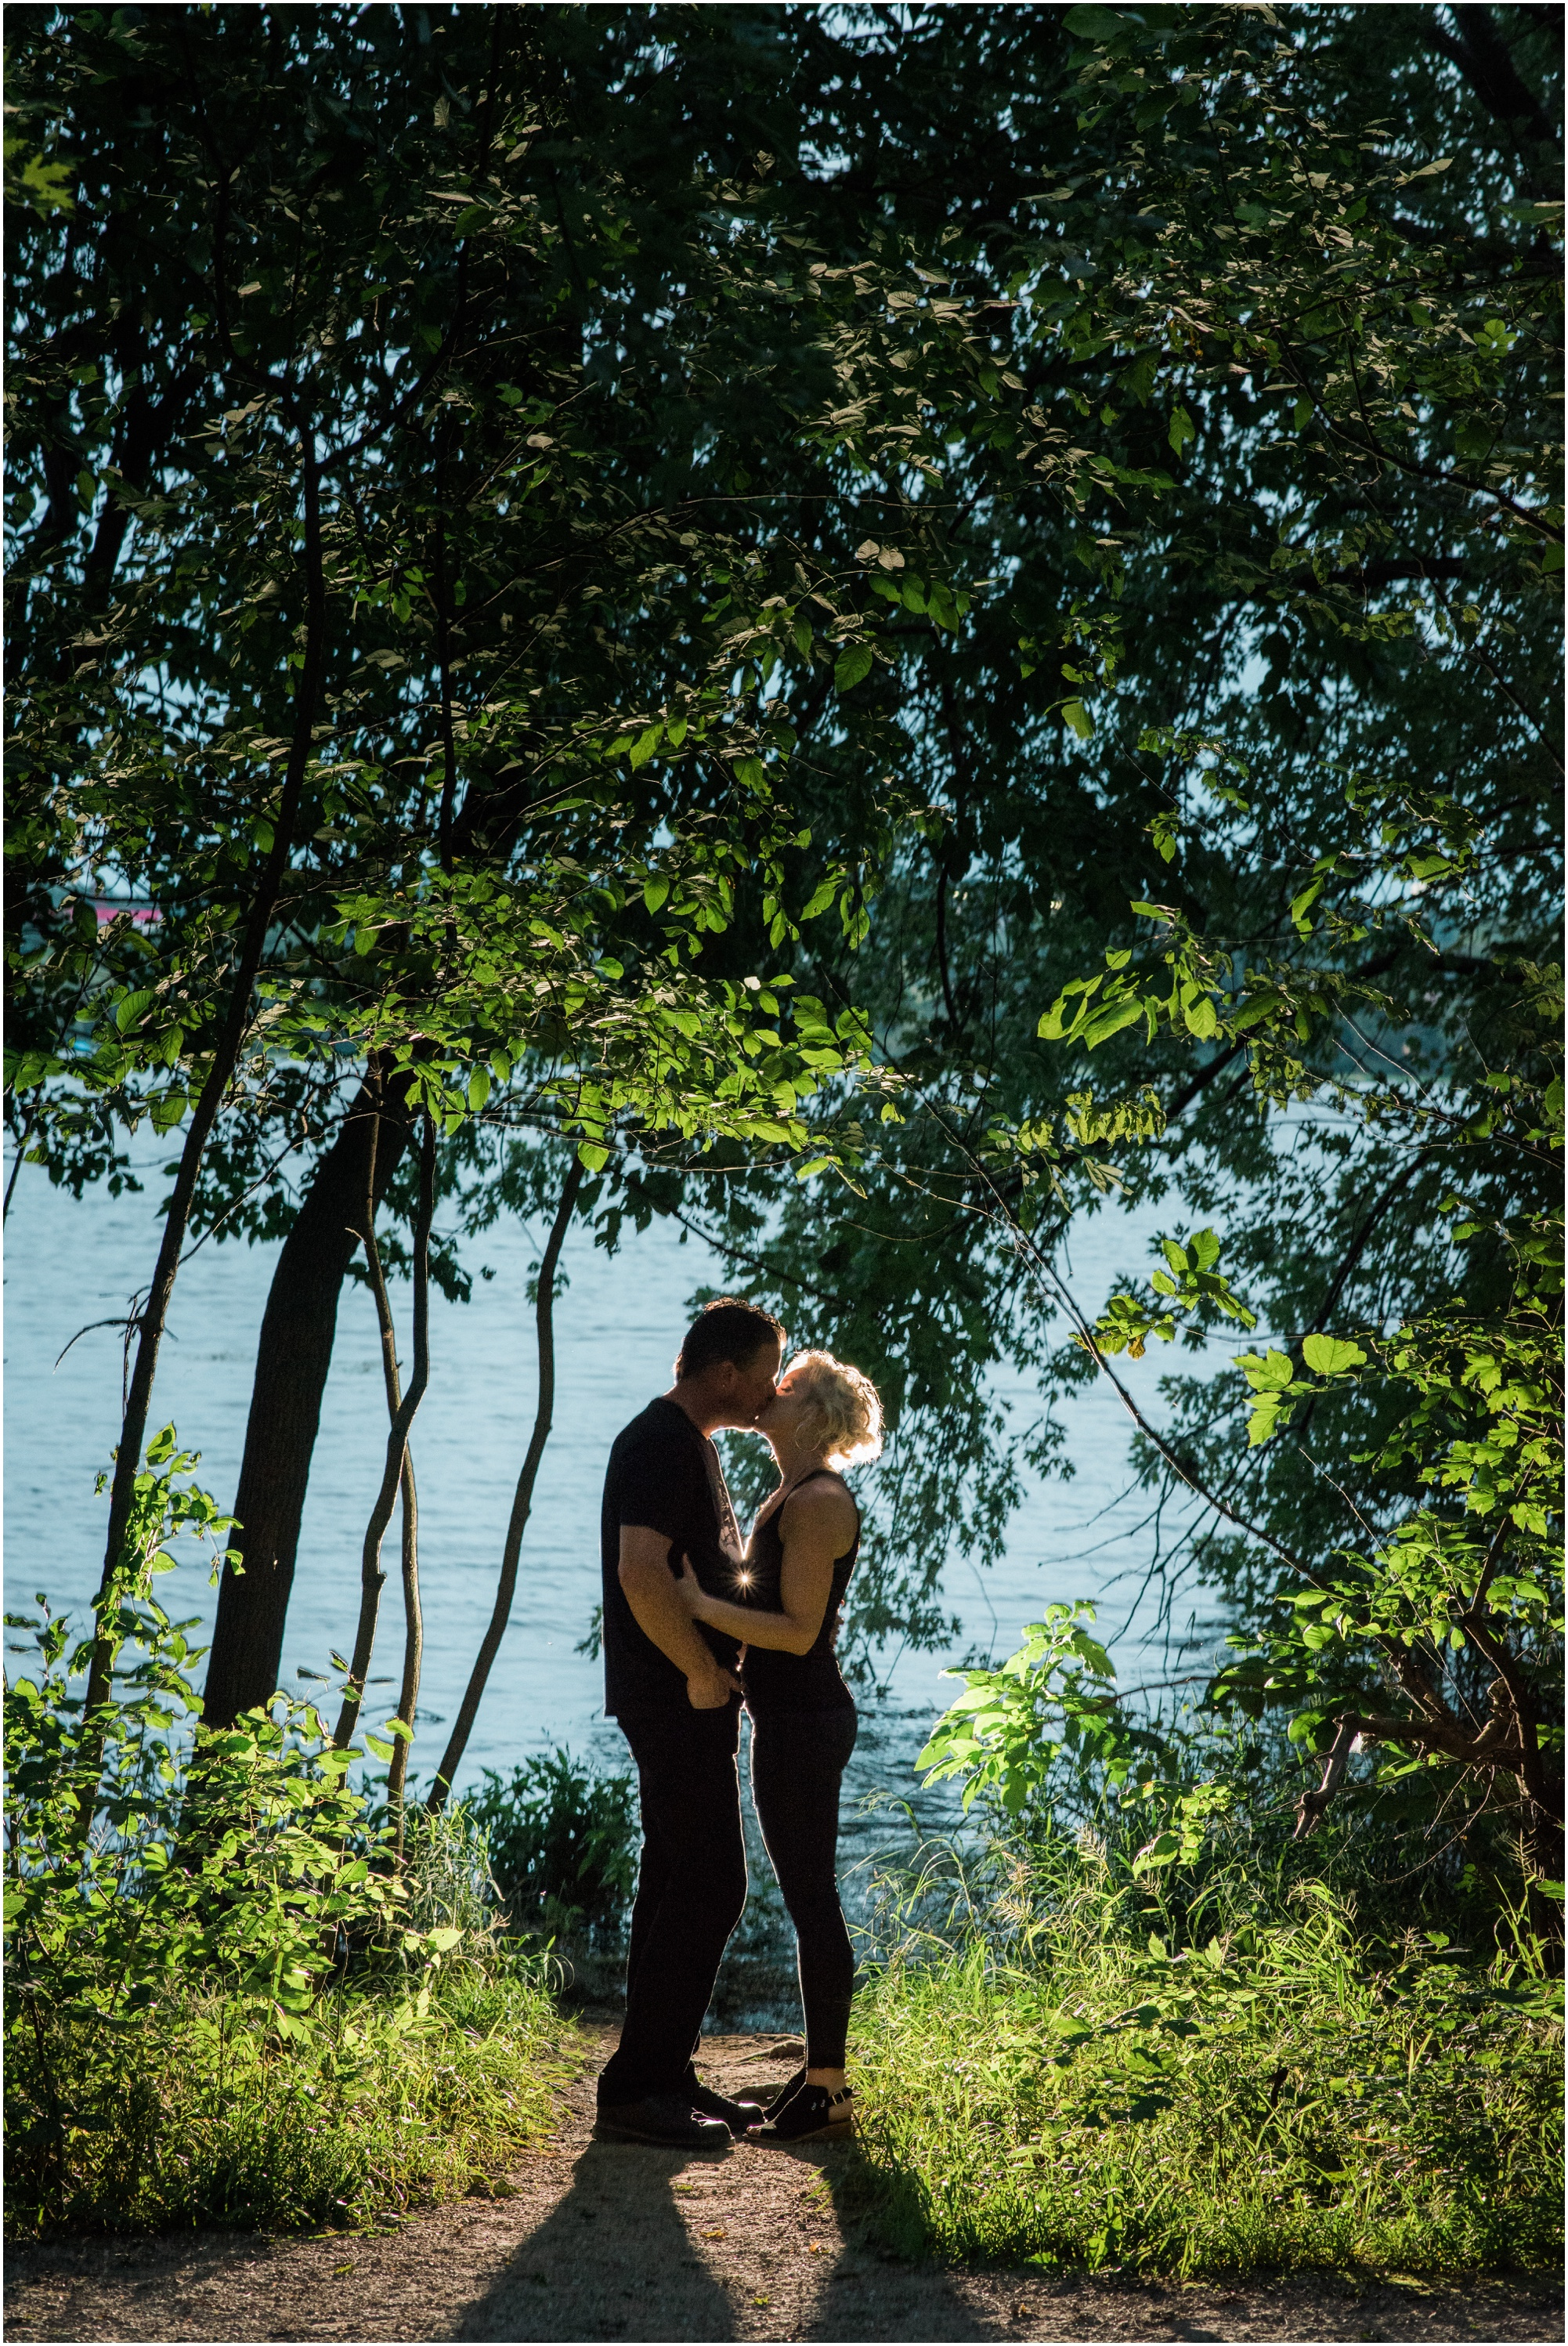 Madison-Engagement-Photographer-Picnic-Point-Madison-Wisconsin-Engagement-Session-Kelli-and-Robert-146.jpg